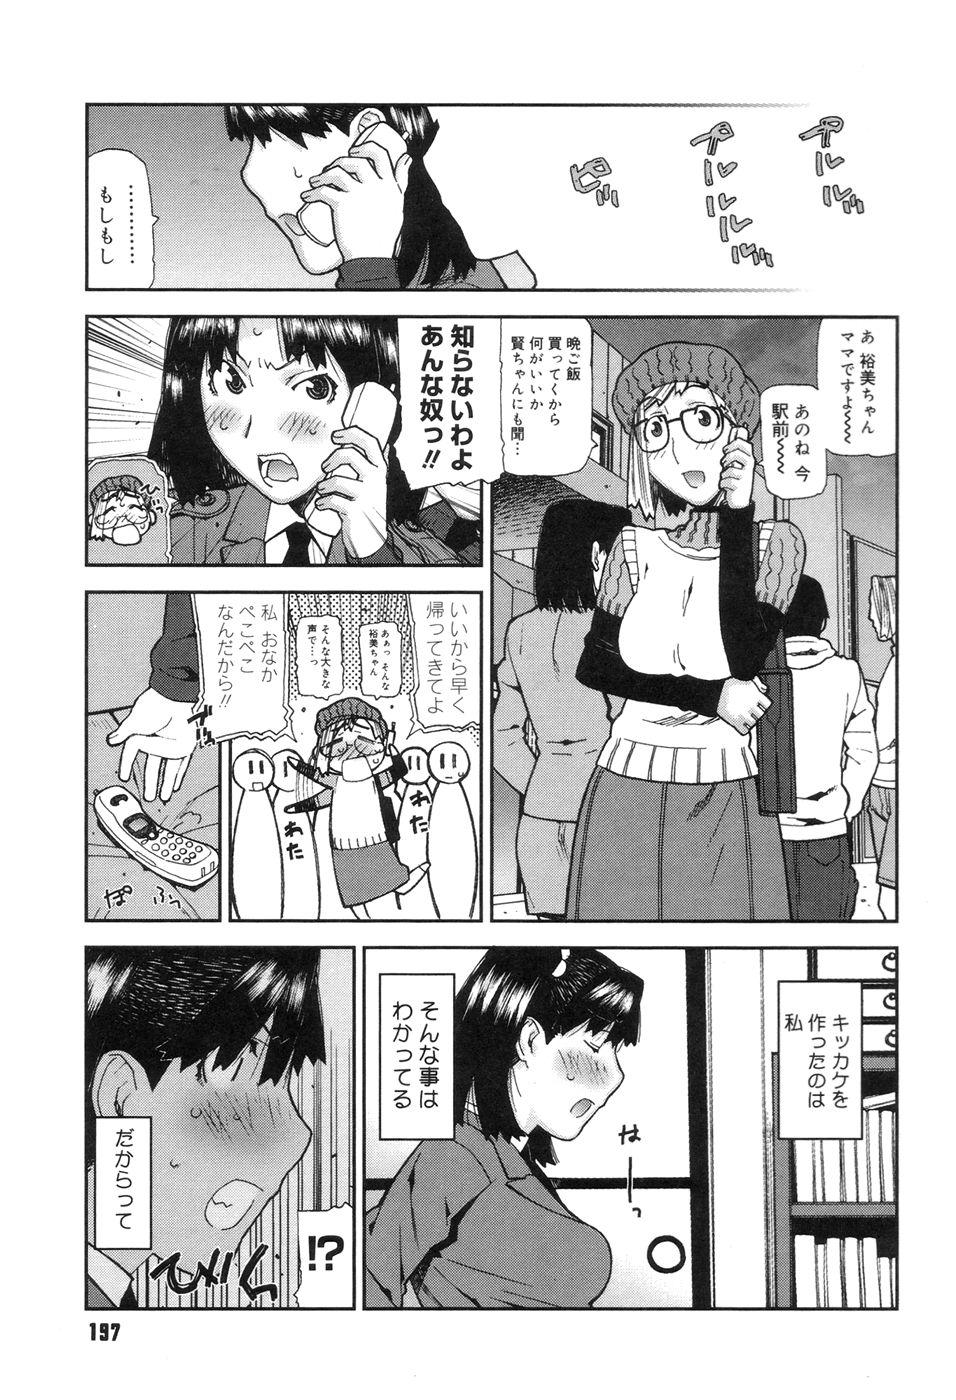 Onee-chan to issho 198